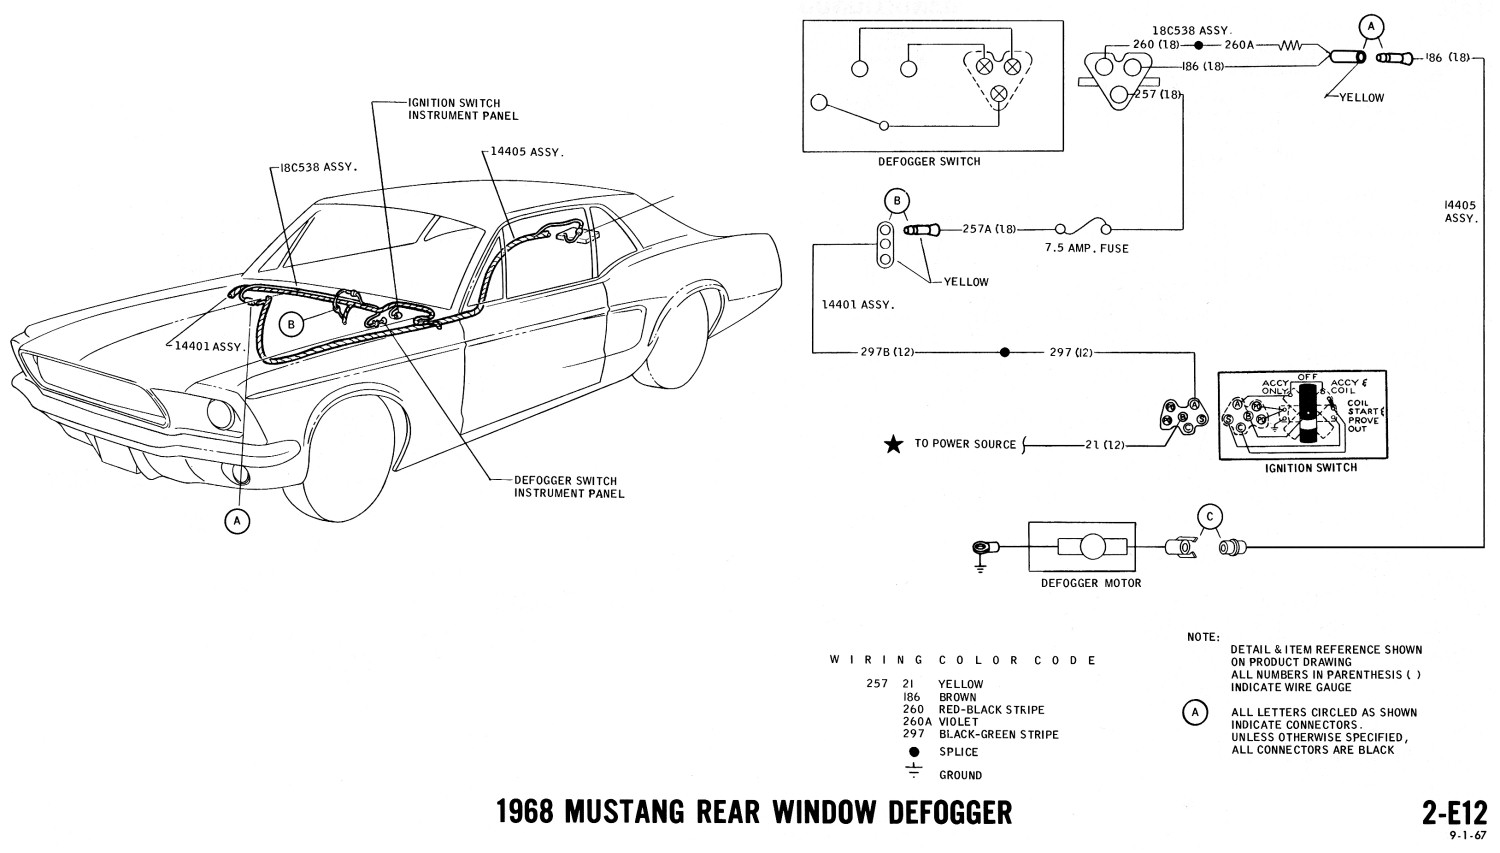 1968 Mustang Wiring Diagrams And Vacuum Schematics Average Joe Ford Engine Diagram Rear Window Defrost